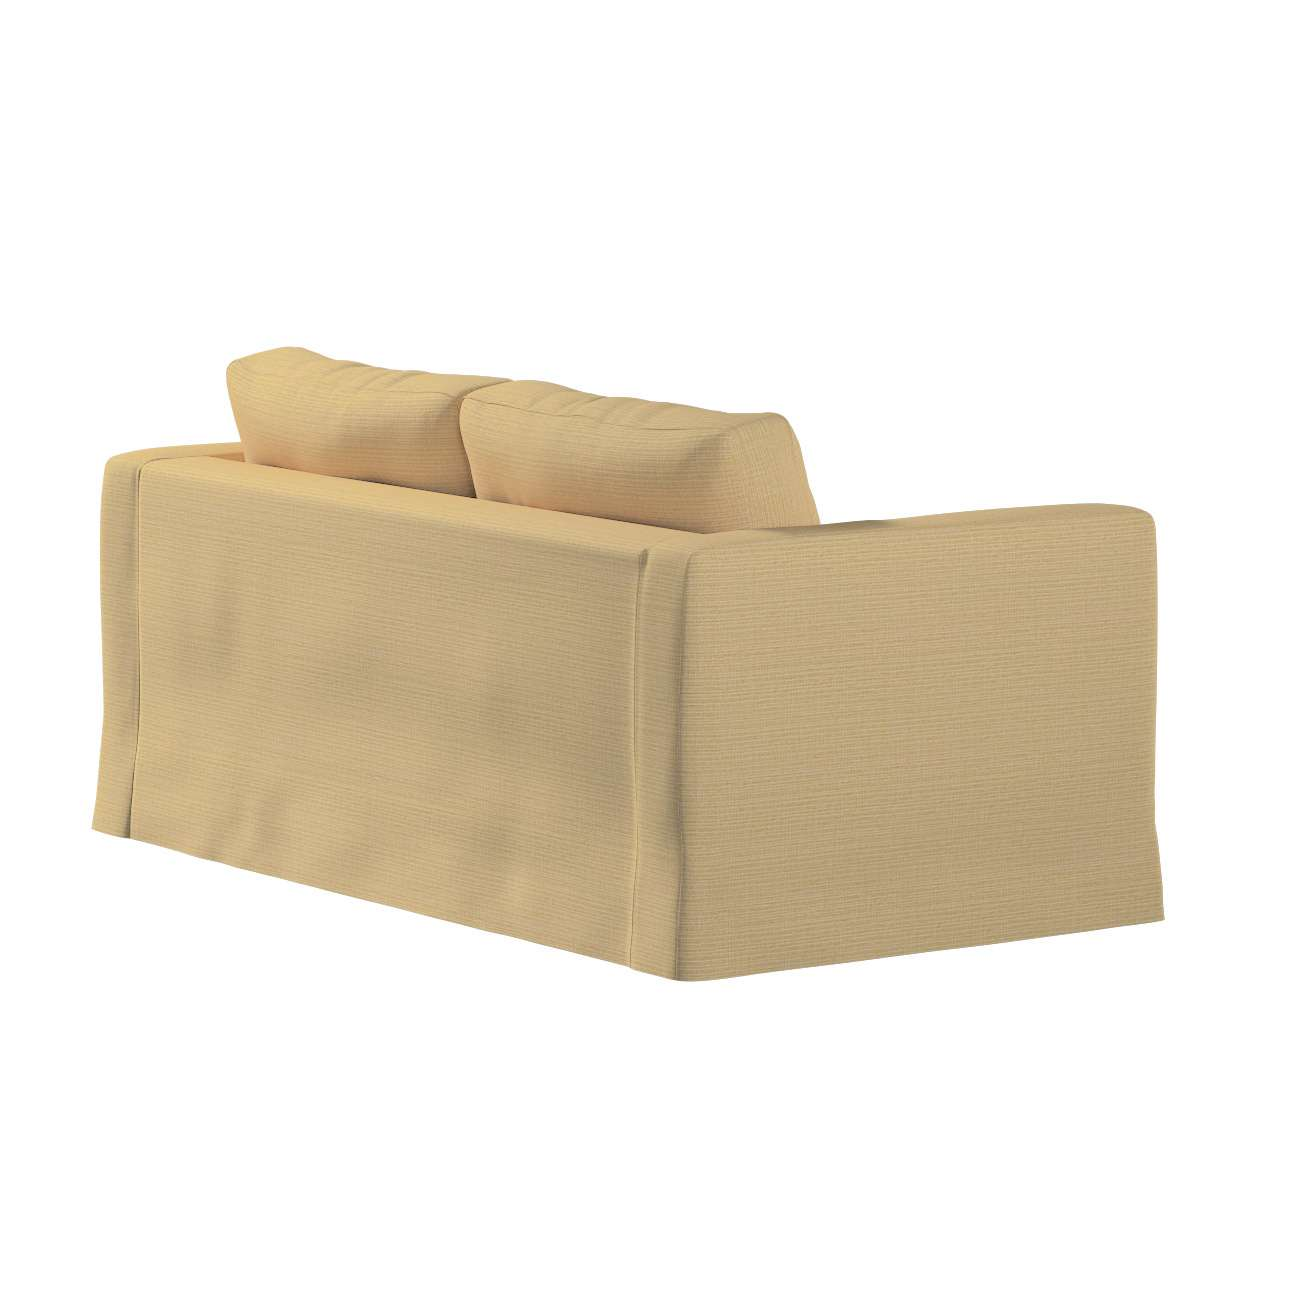 Floor length Karlstad 2-seater sofa cover in collection Living, fabric: 101-14